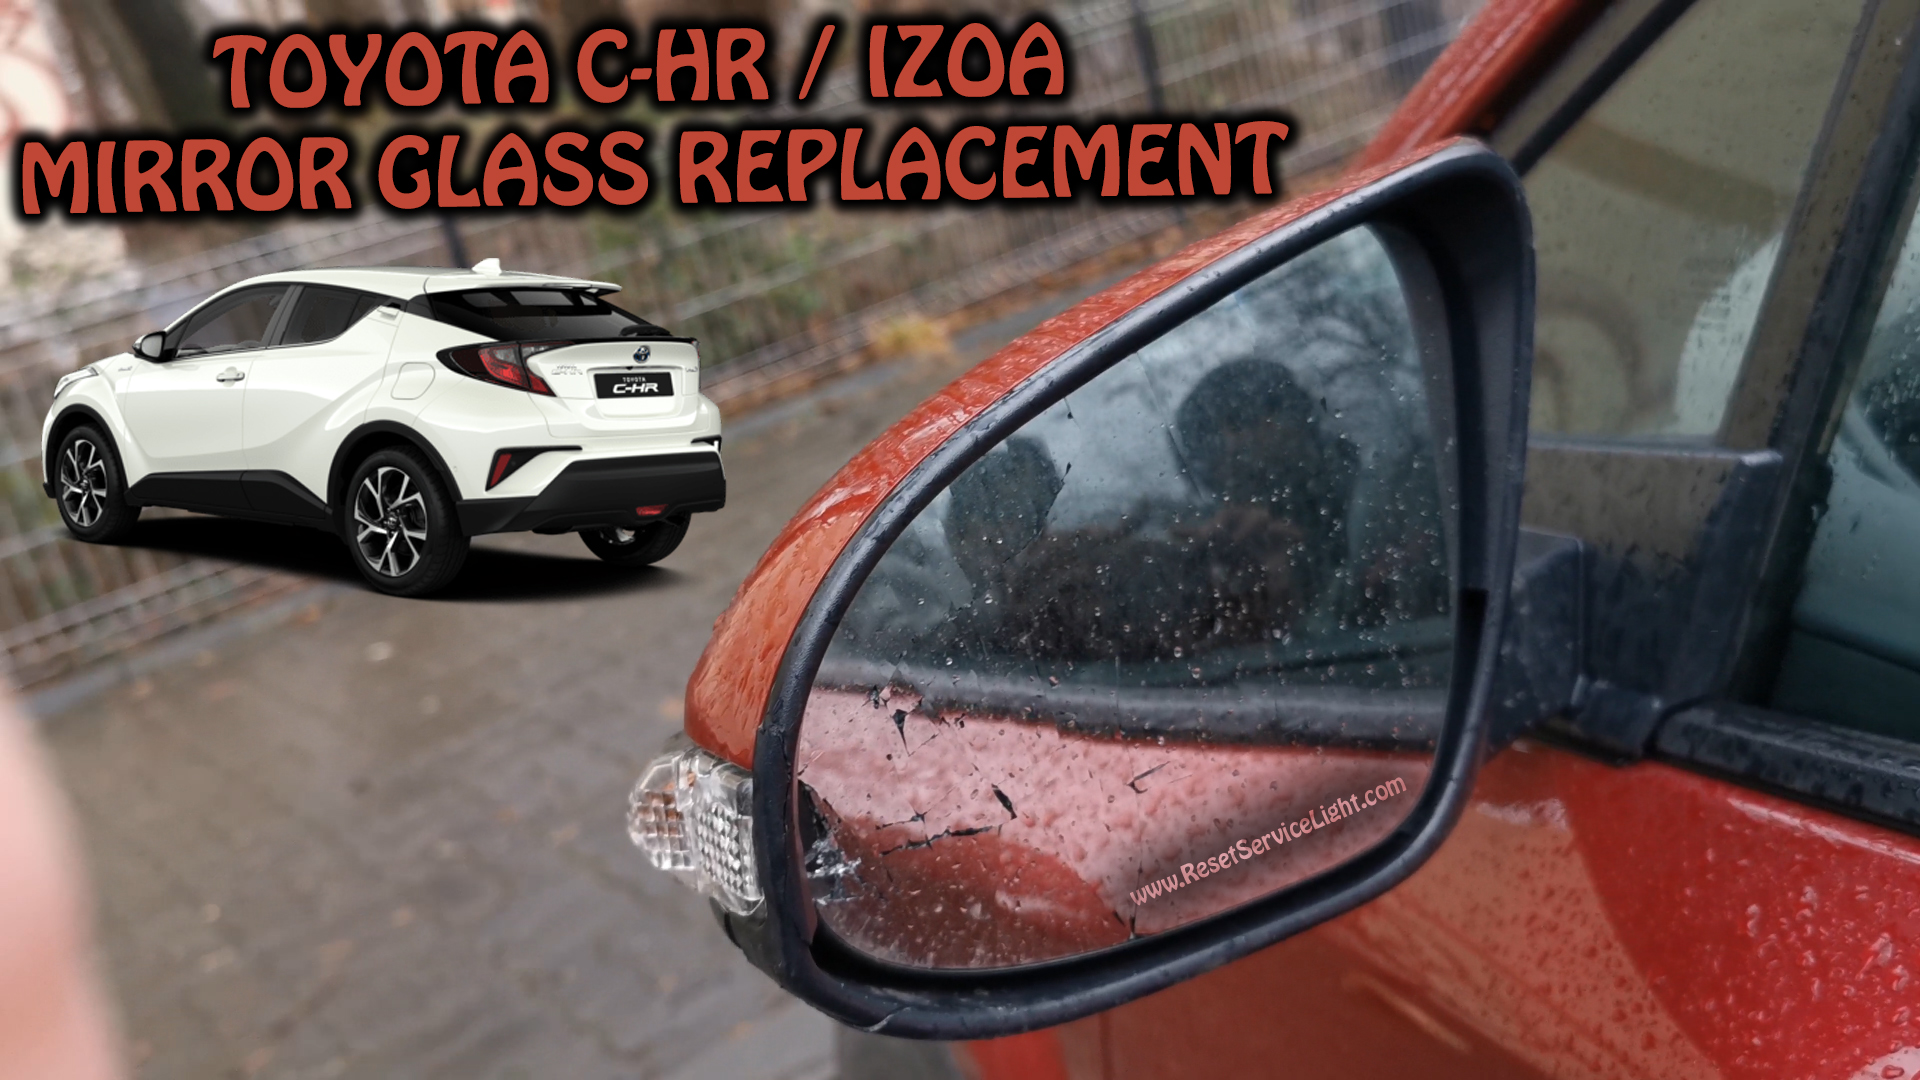 Change mirror glass Toyota CHR C-HR IZOA